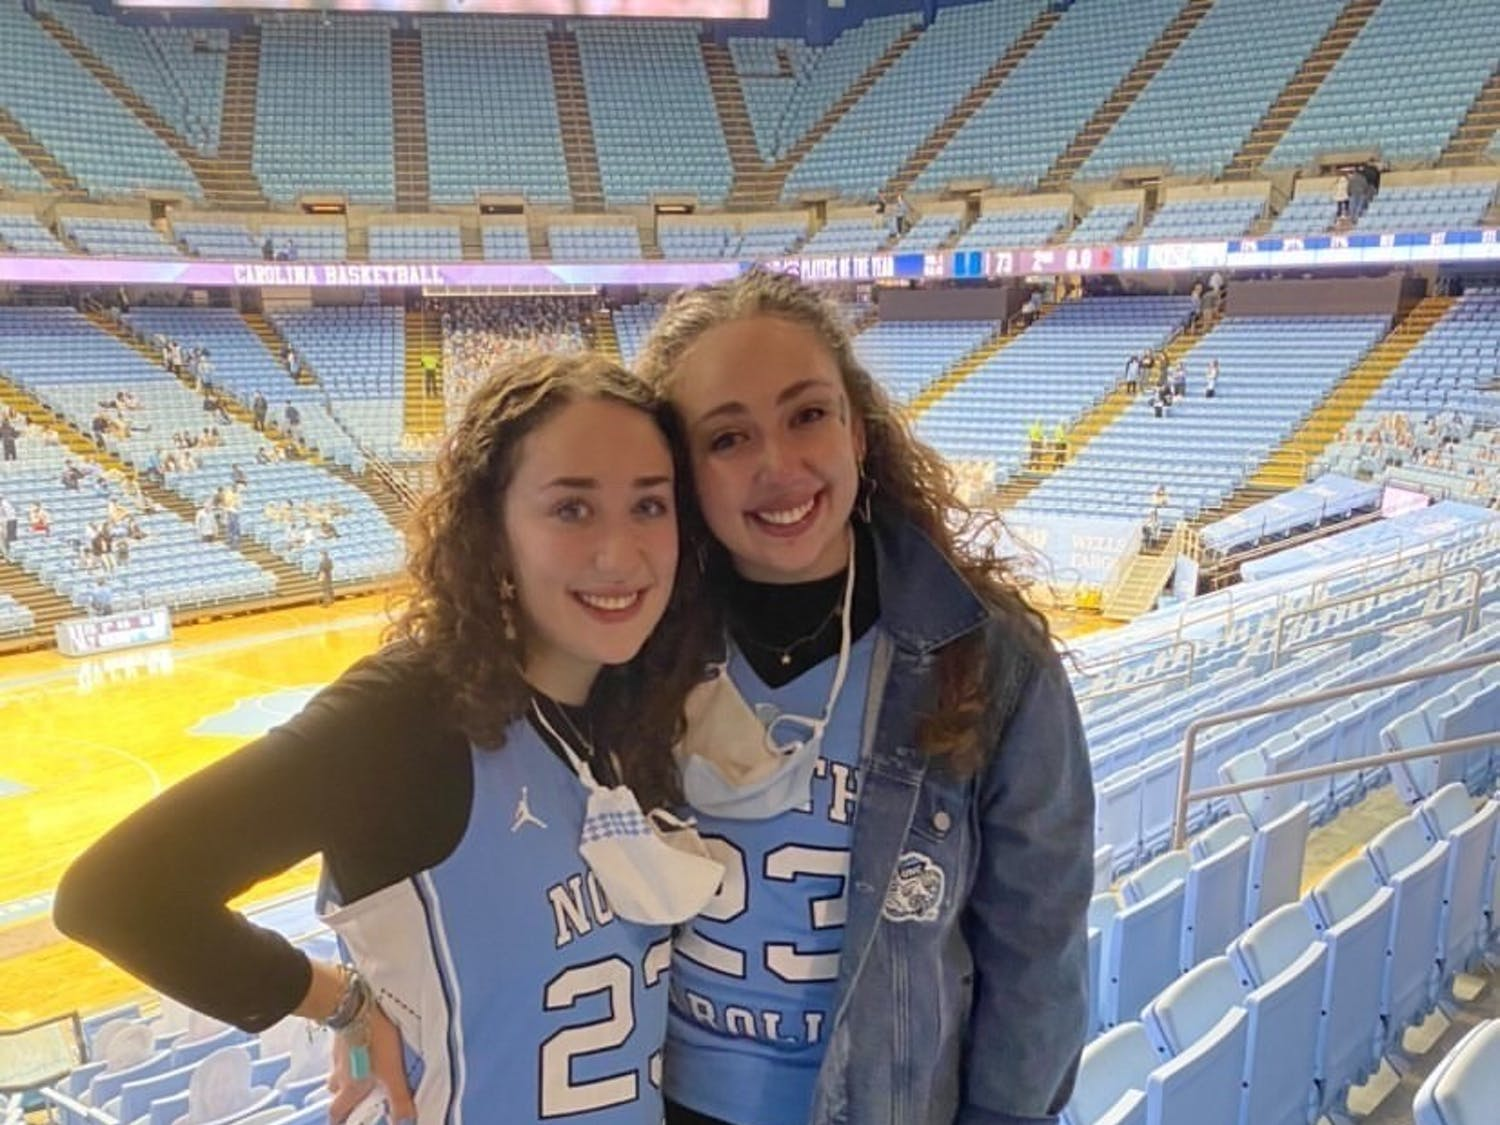 """Senior Katie Weber and First-year Sarah Weber are sisters who have bonded over UNC basketball since going to Carolina. """"It was so exciting to see how energetic he was about the team"""" Sarah said about head Coach Roy Williams."""